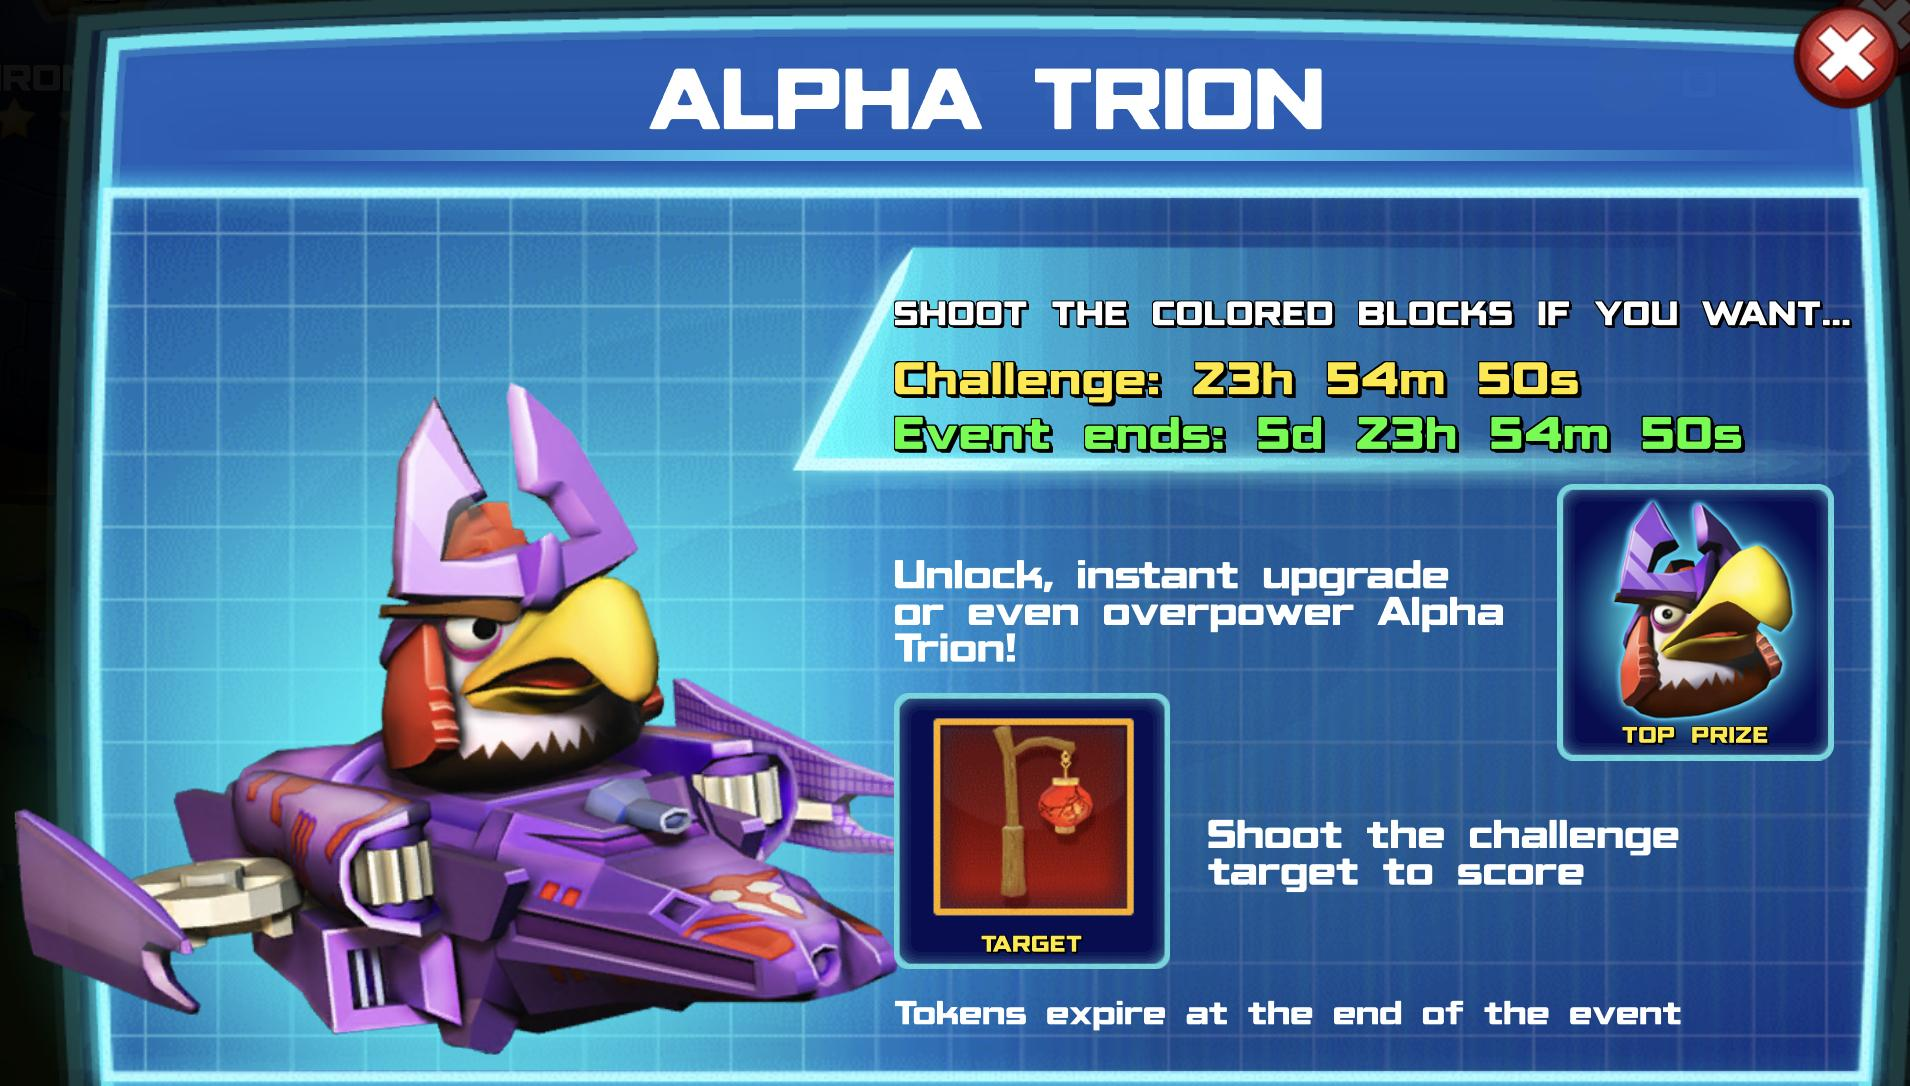 The event banner for Alpha Trion